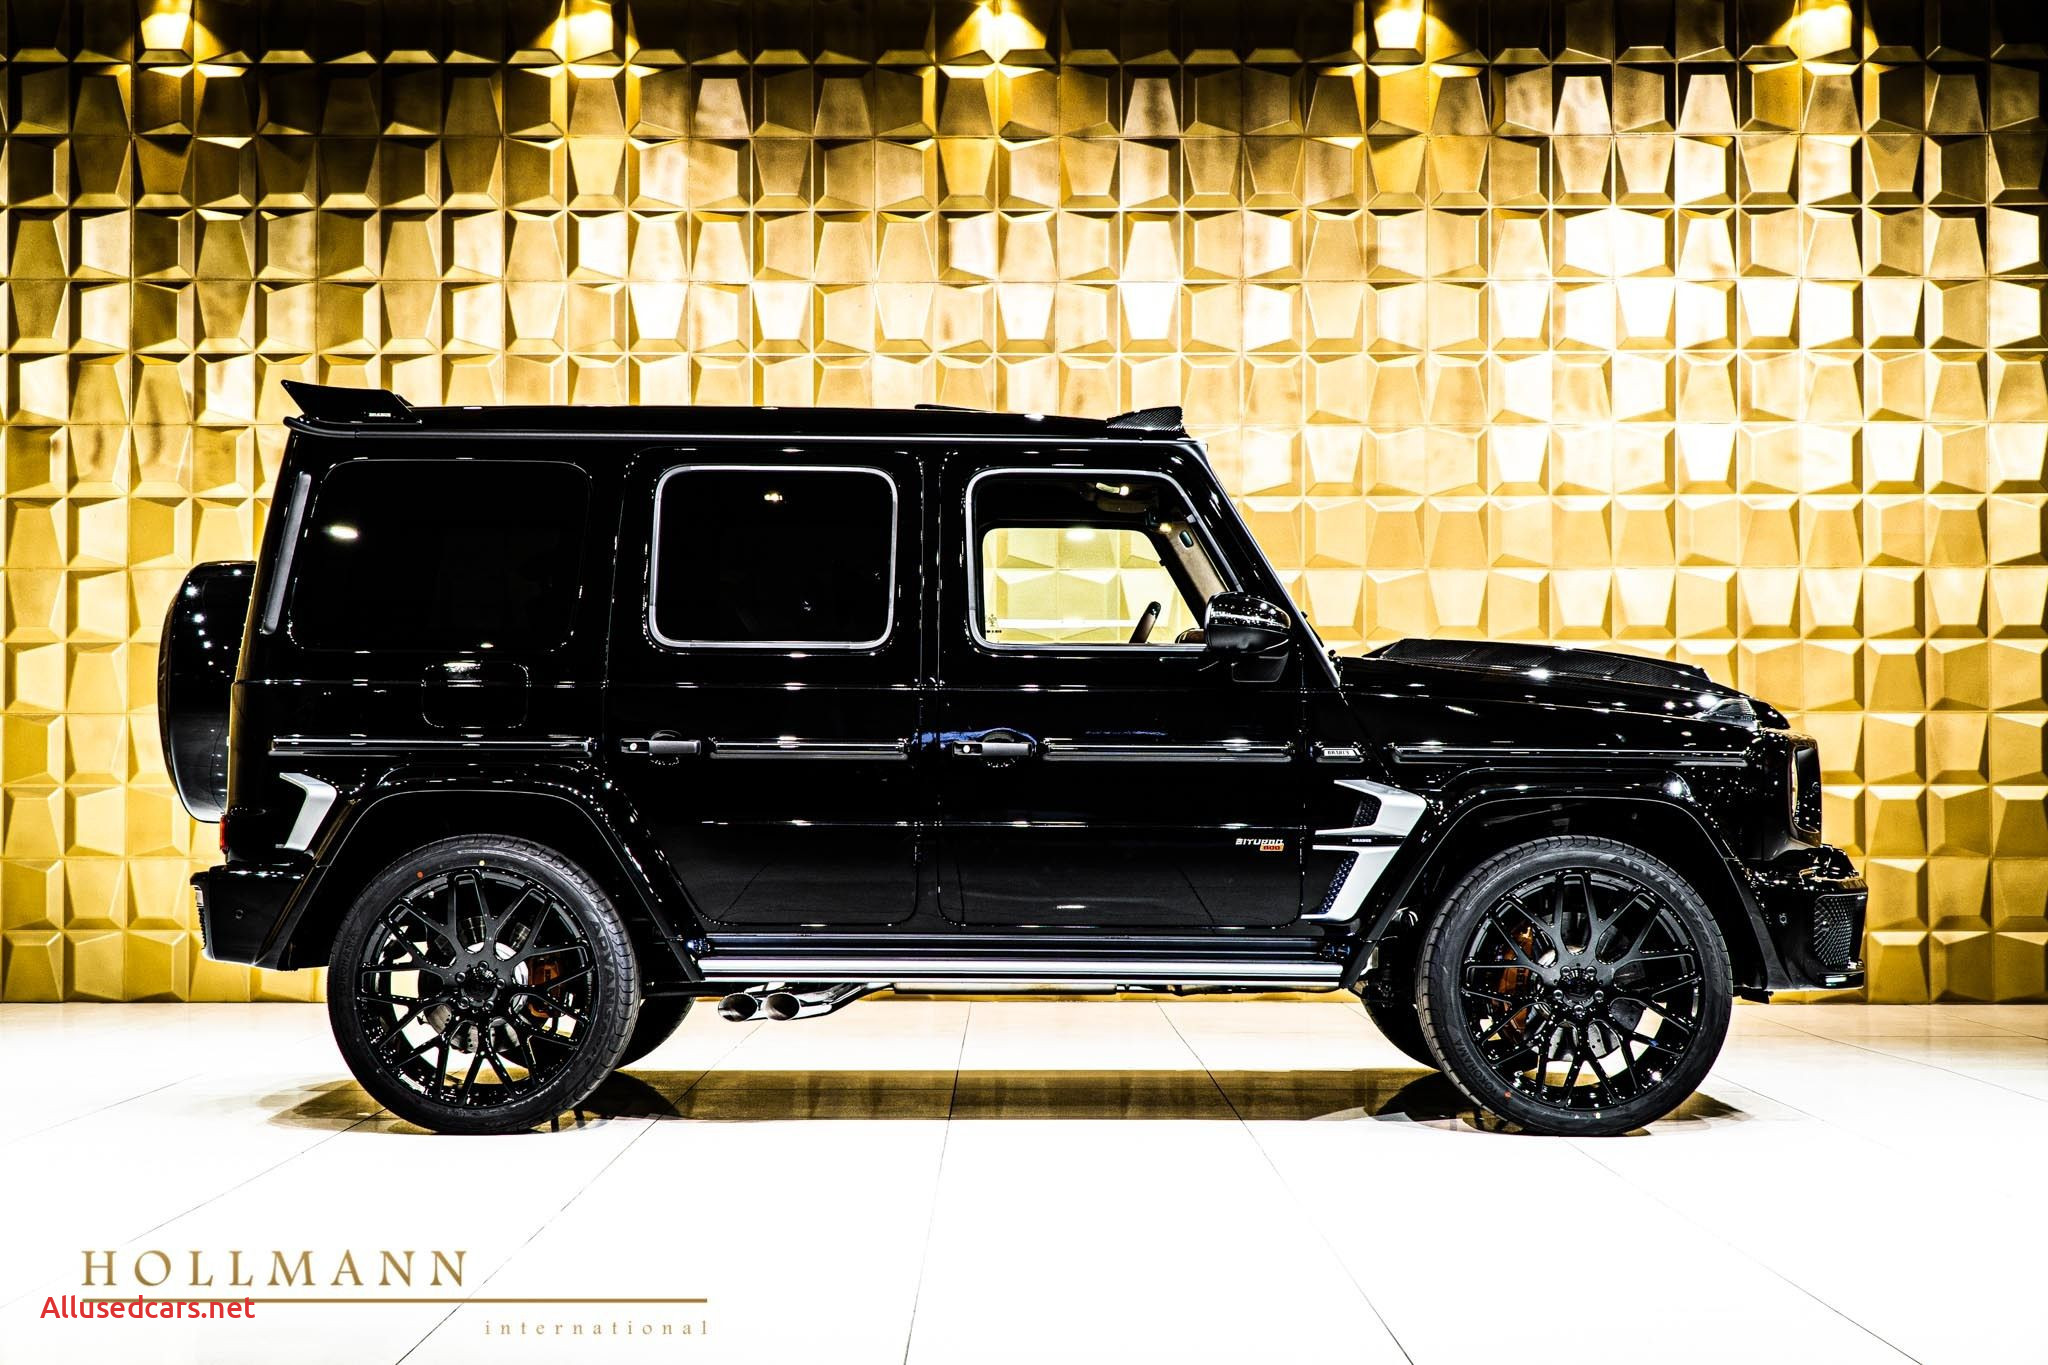 Used Cars for Sale 800 Inspirational for Sale Mercedes Benz G 63 Amg Brabus 800 Hollmann